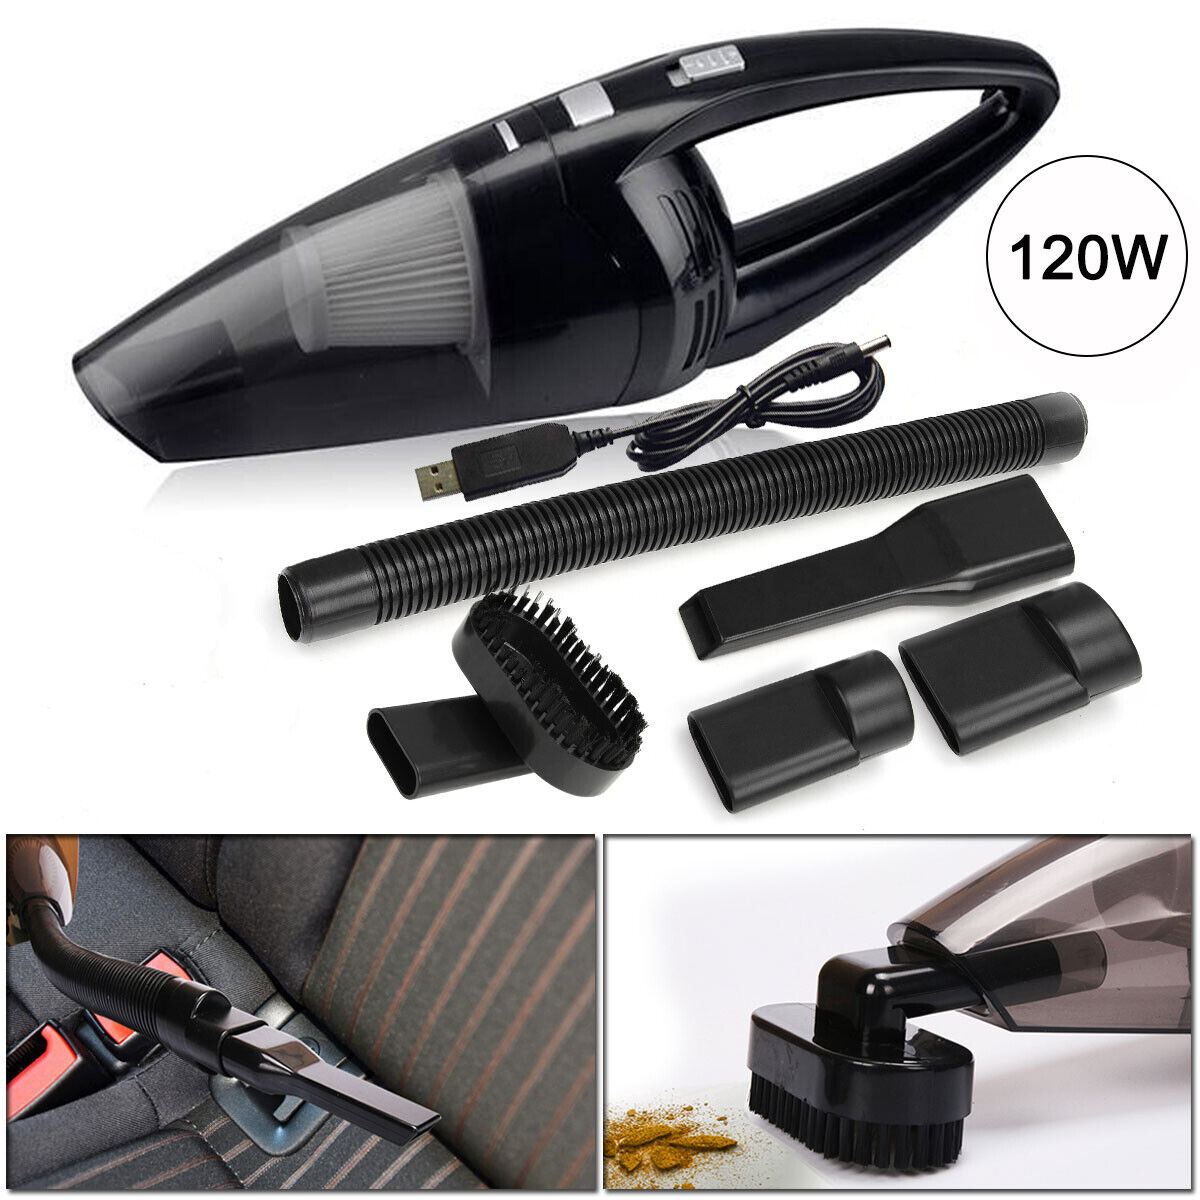 2020 Cordless Car Vacuum Cleaner Home Rechargeable Wet/Dry H